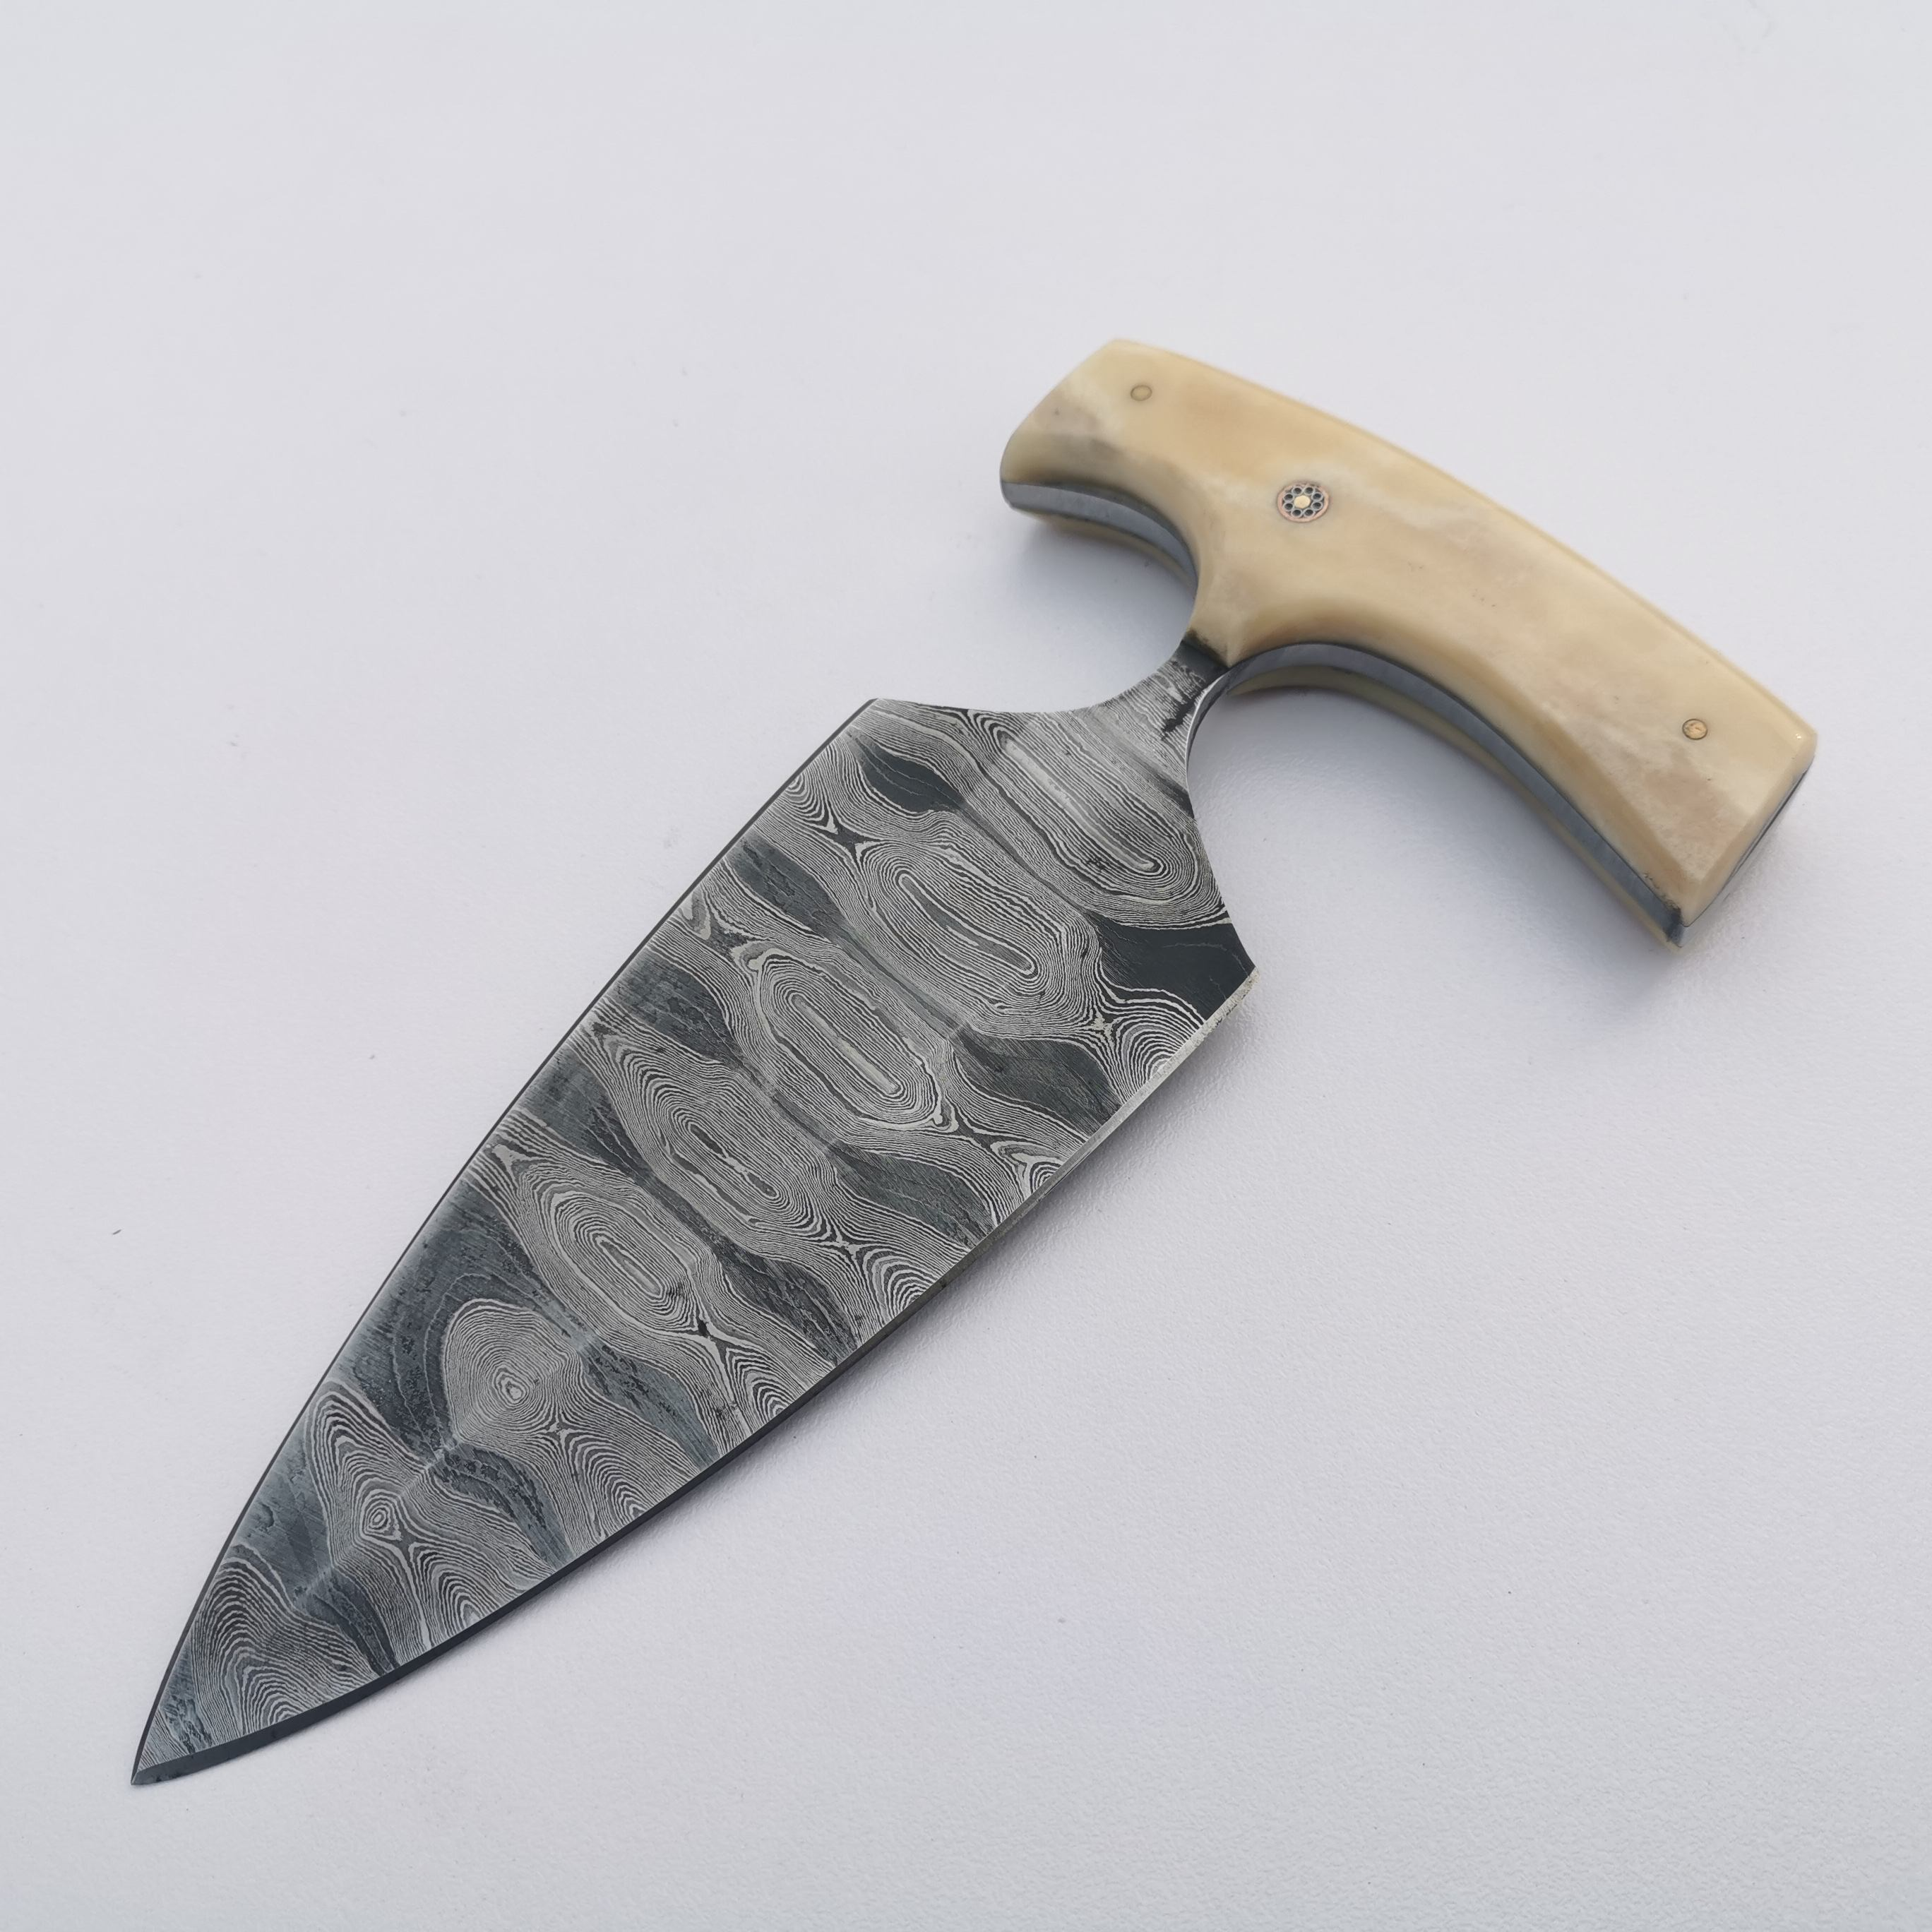 Custom Made High Quality Punch Knife with Genuine Leather Sheath, Best Punch Knife, Damascus Knife